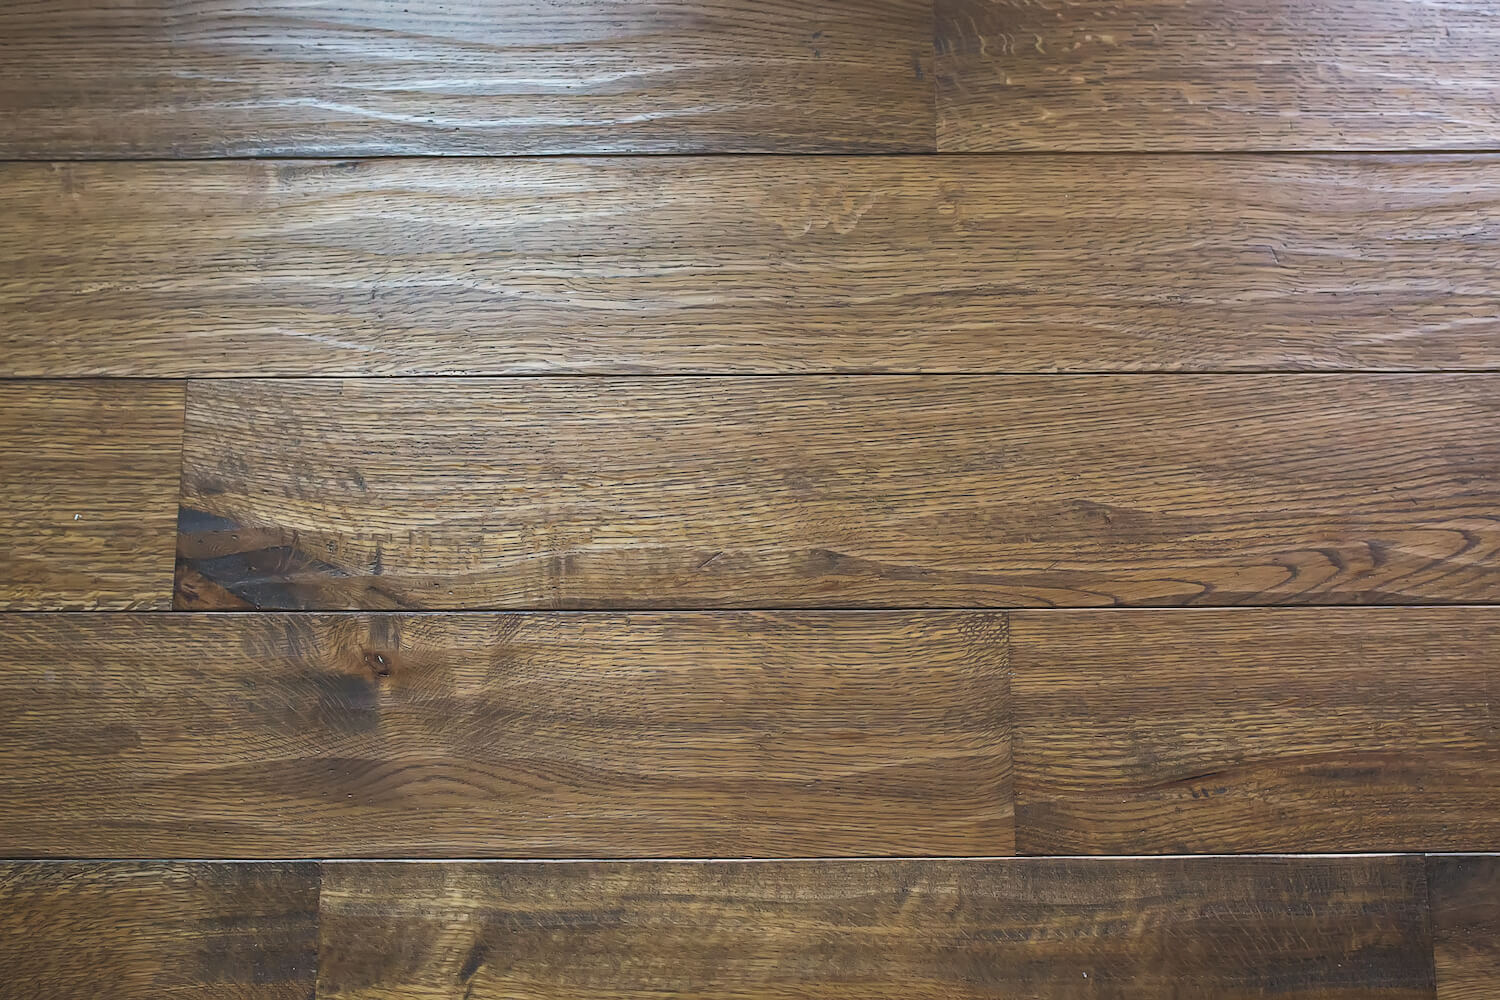 Unique texture created by hand scraping white oak floors and then finishing them with Rubio Monocoat.